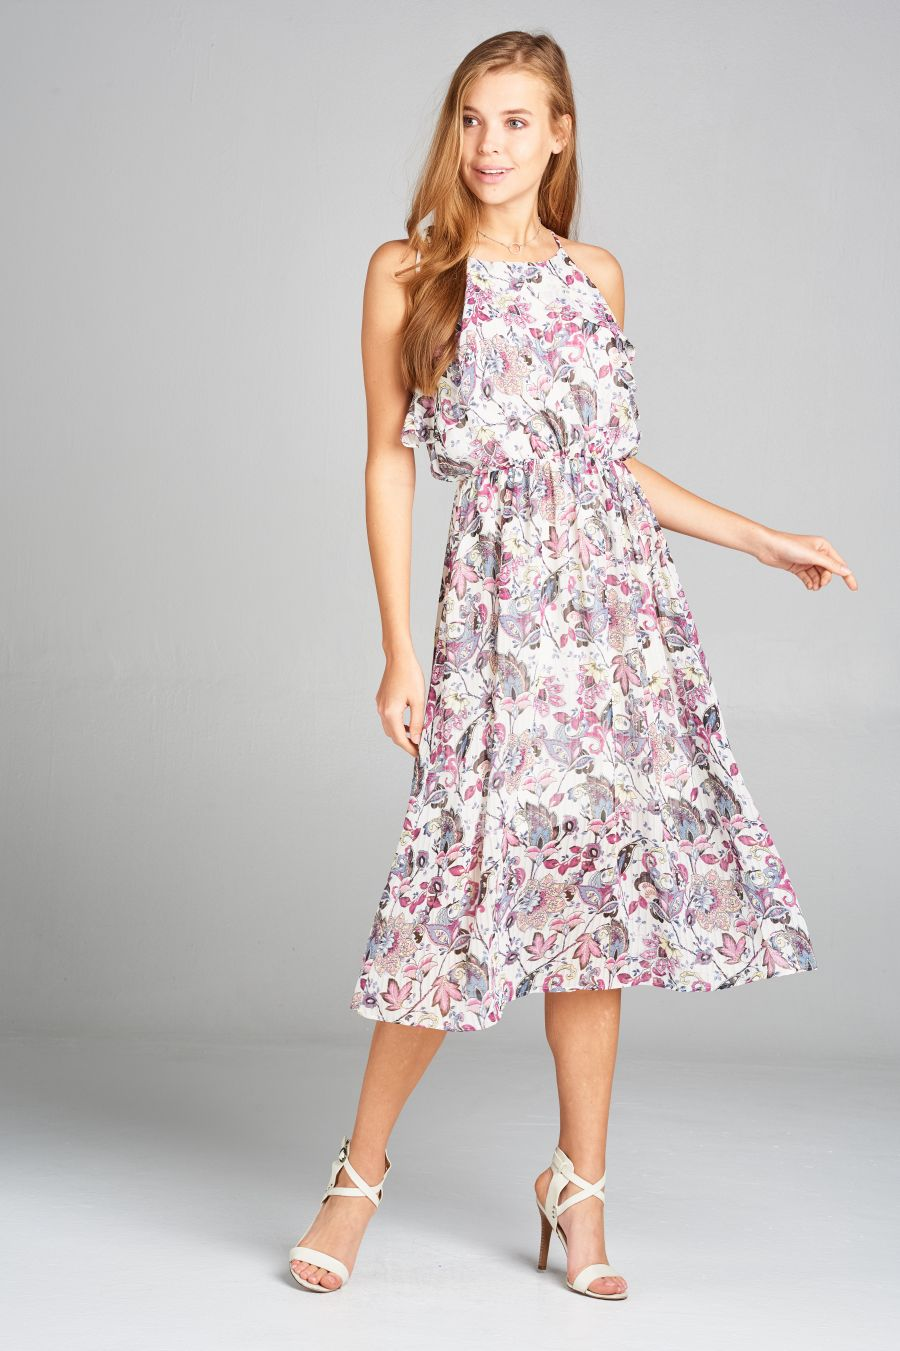 Floral Print Ruffled Top Dress